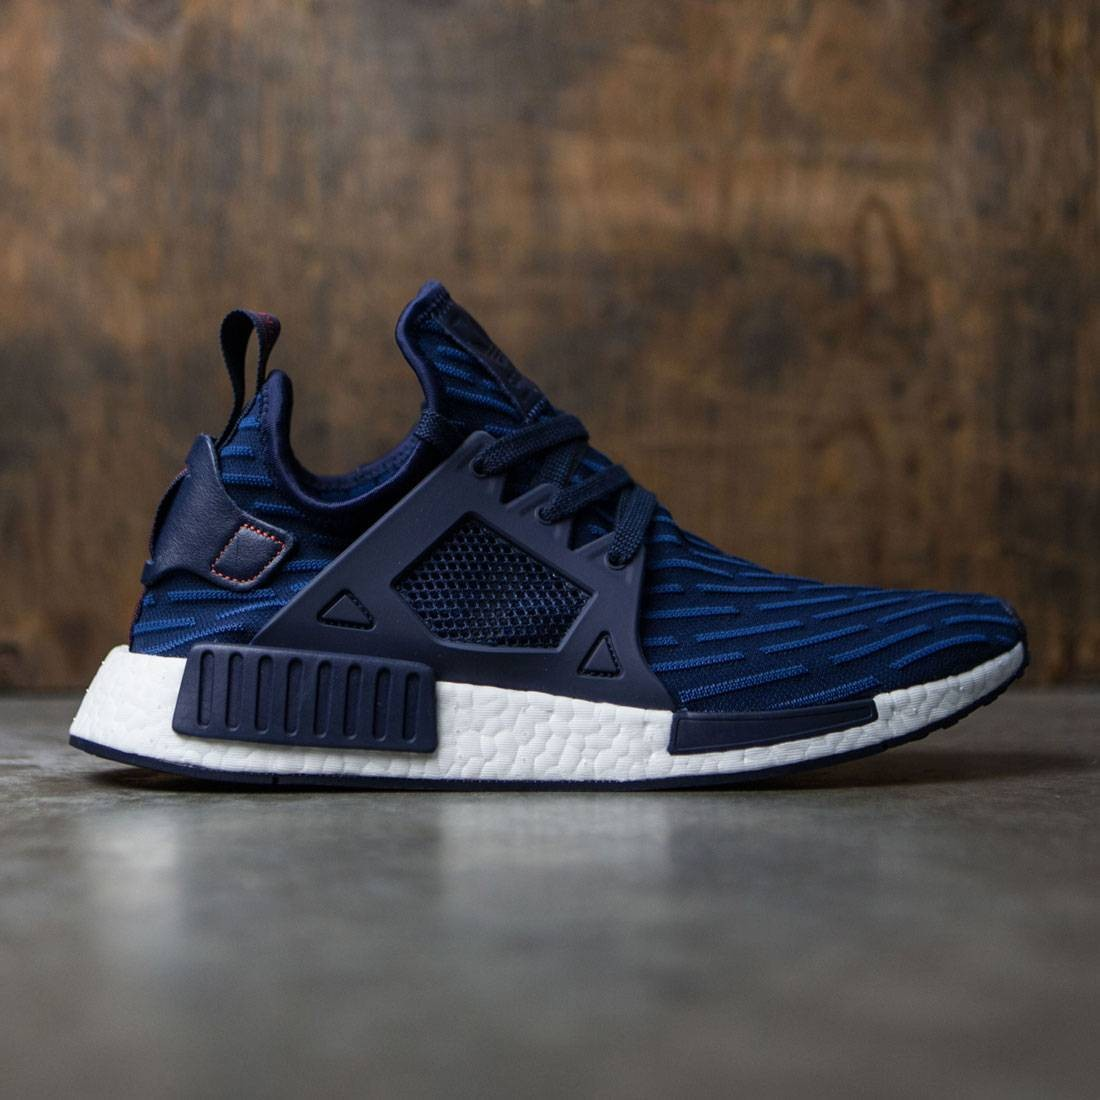 fec88e573 adidas NMD Xr1 Black White Champs Boost By3050 10.5